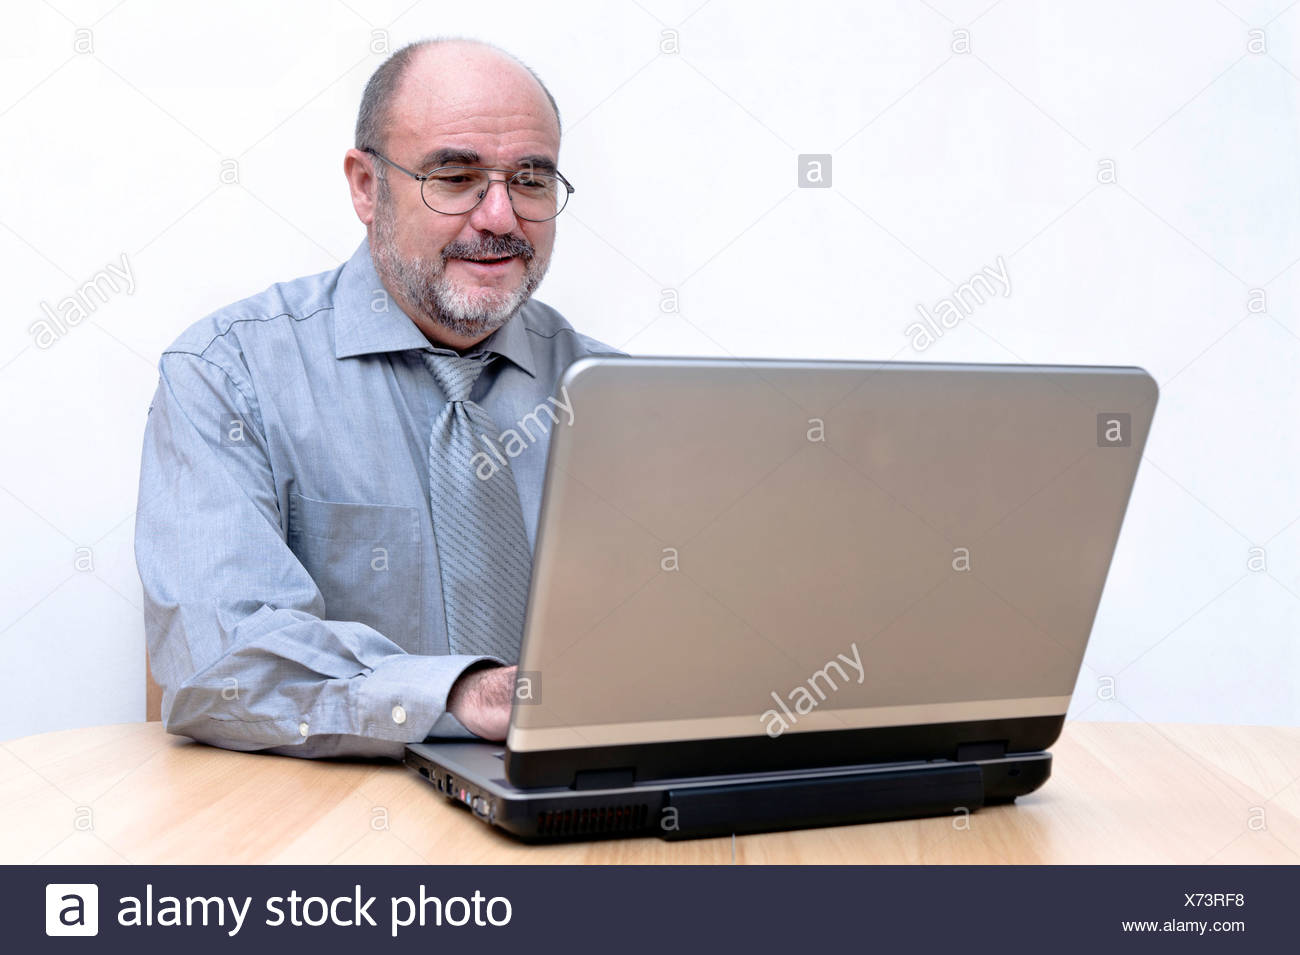 Man focussed on his work on the laptop Stock Photo